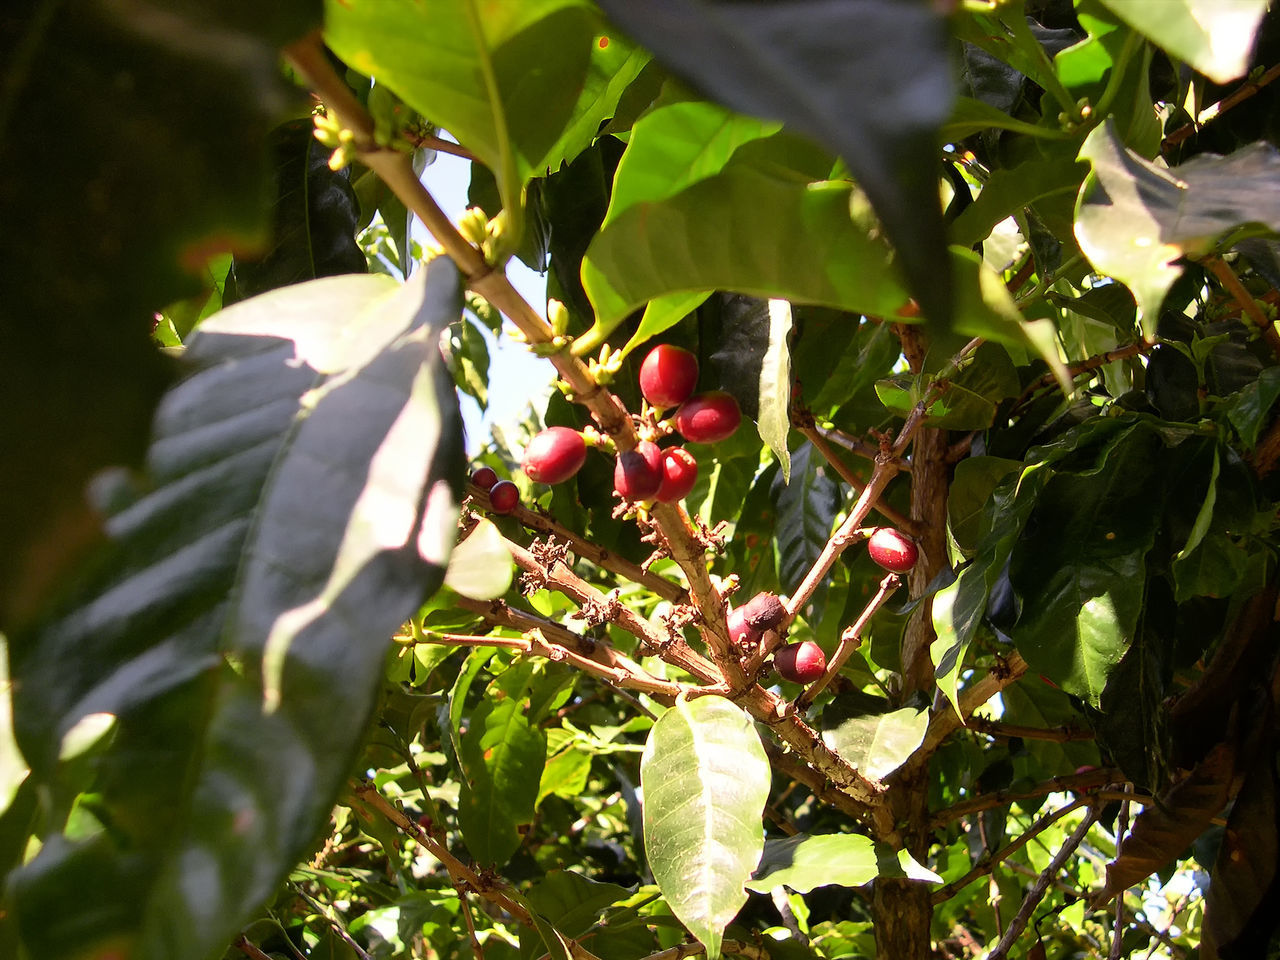 Beauty In Nature Close-up Coffee Beans Coffee Plant Food And Drink Fruit Green Color Kaffee Pflanze Kaffee Rot Pflan Leaf Low Angle View No People Red Coffee